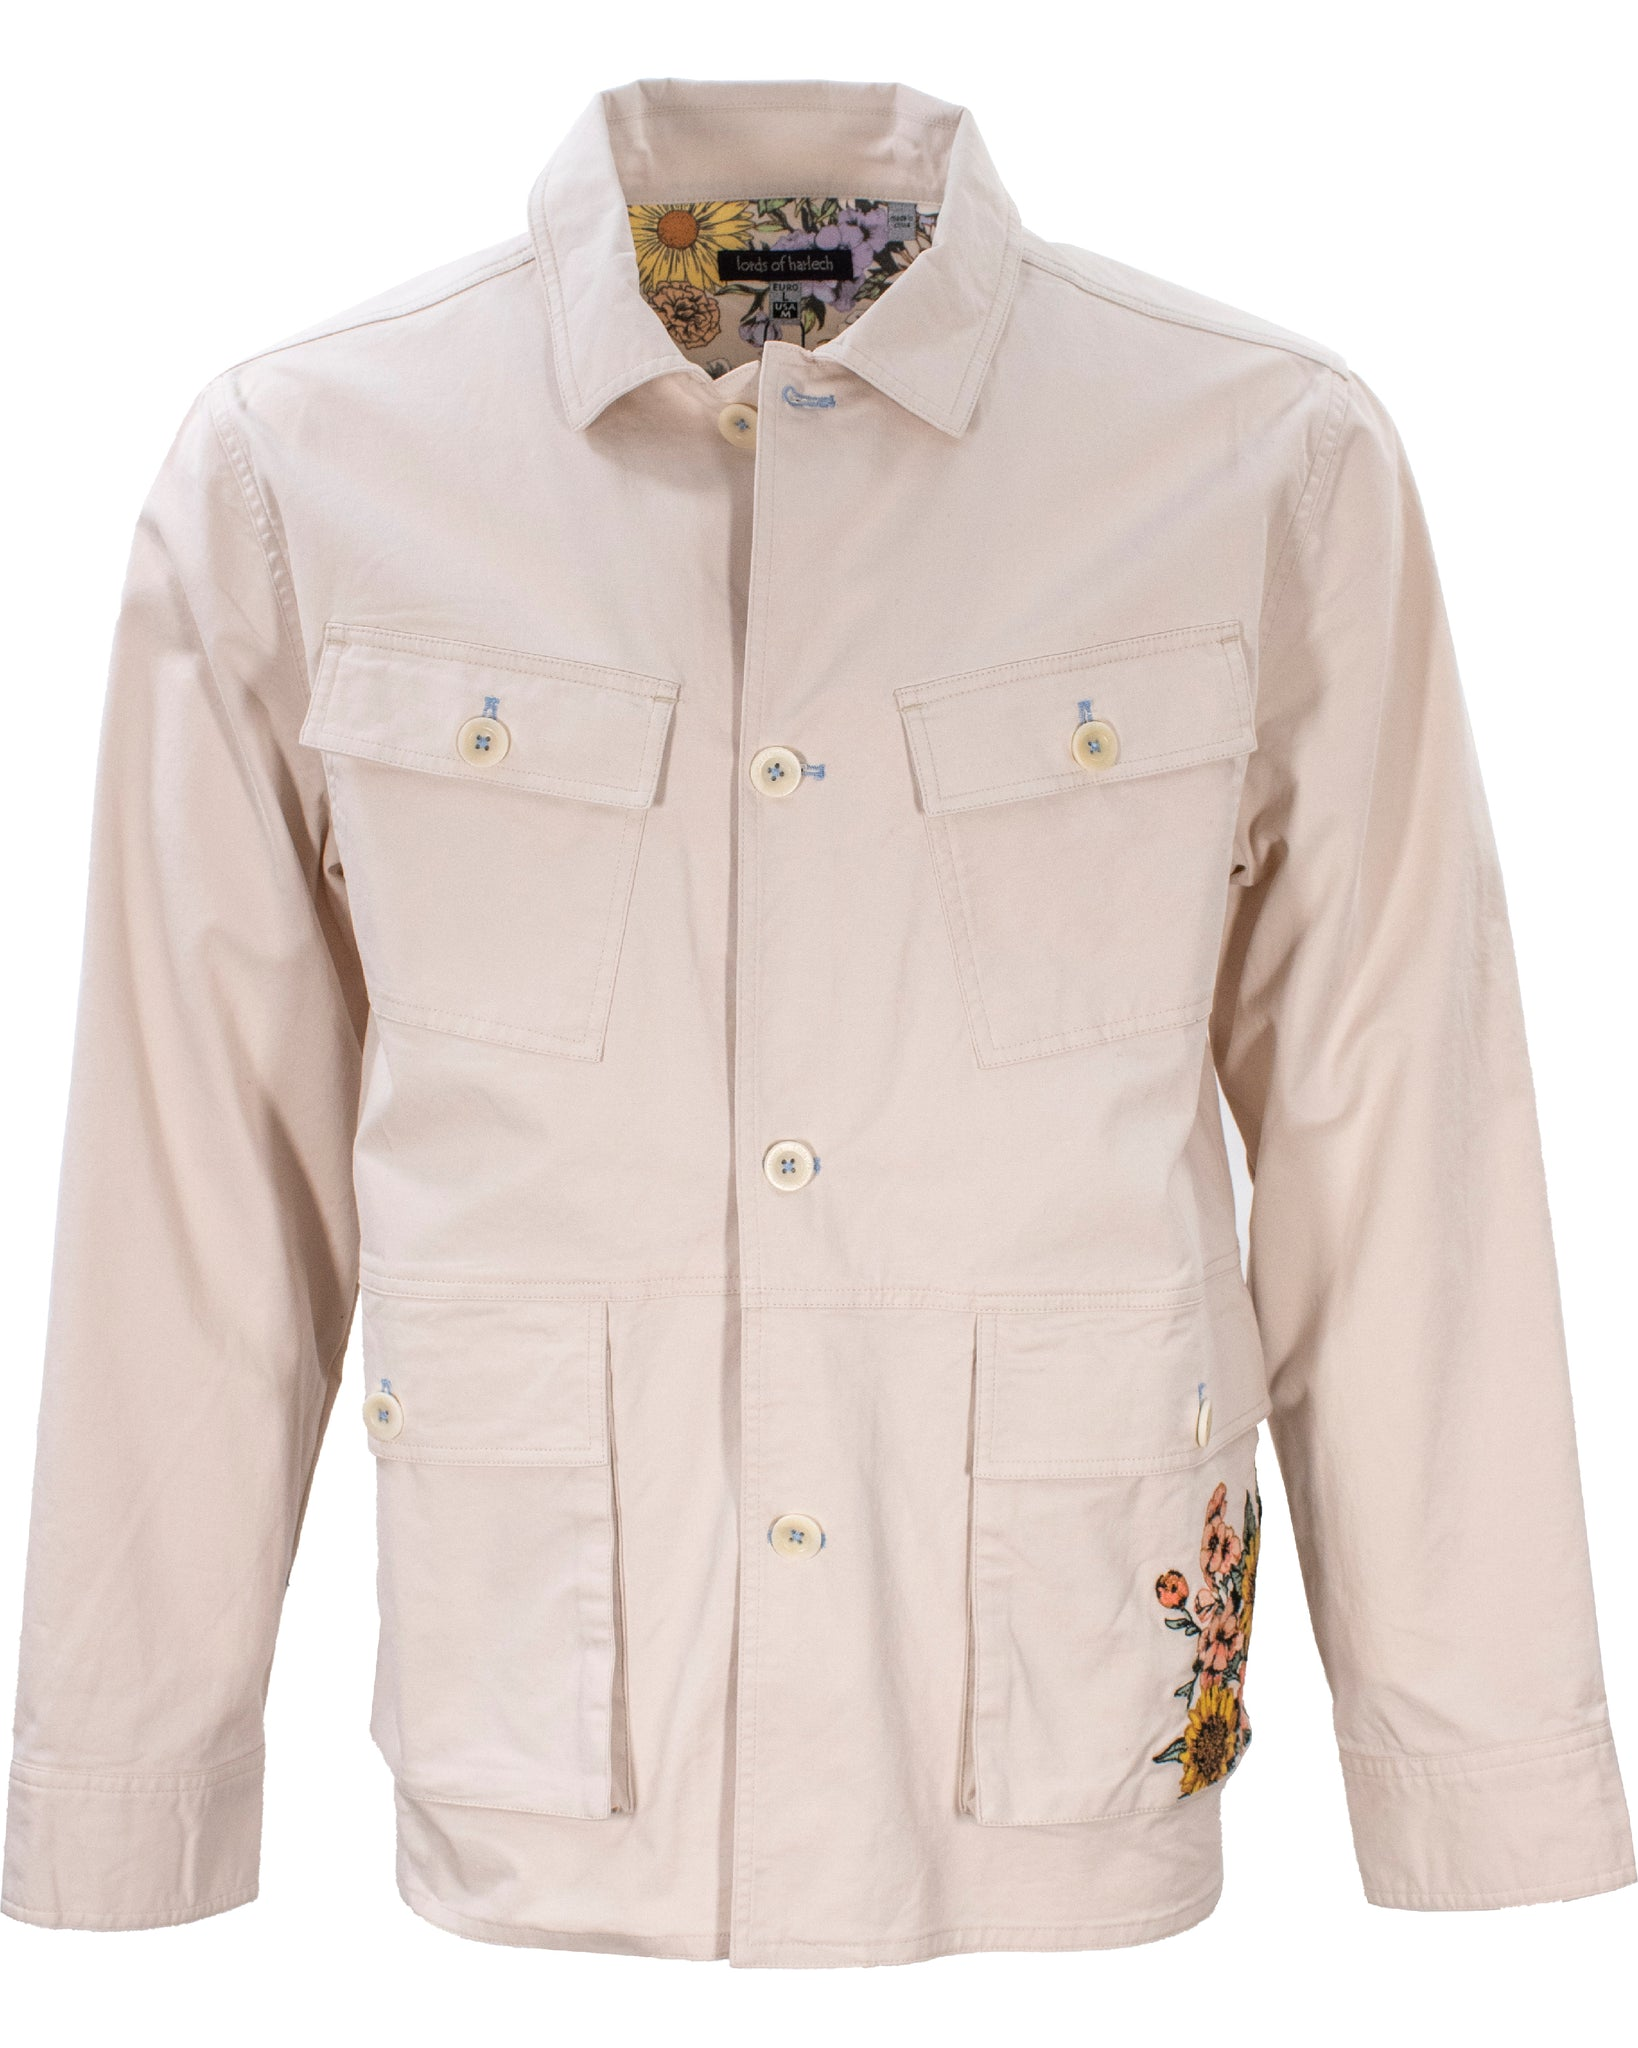 Joe Military Jacket Pumice